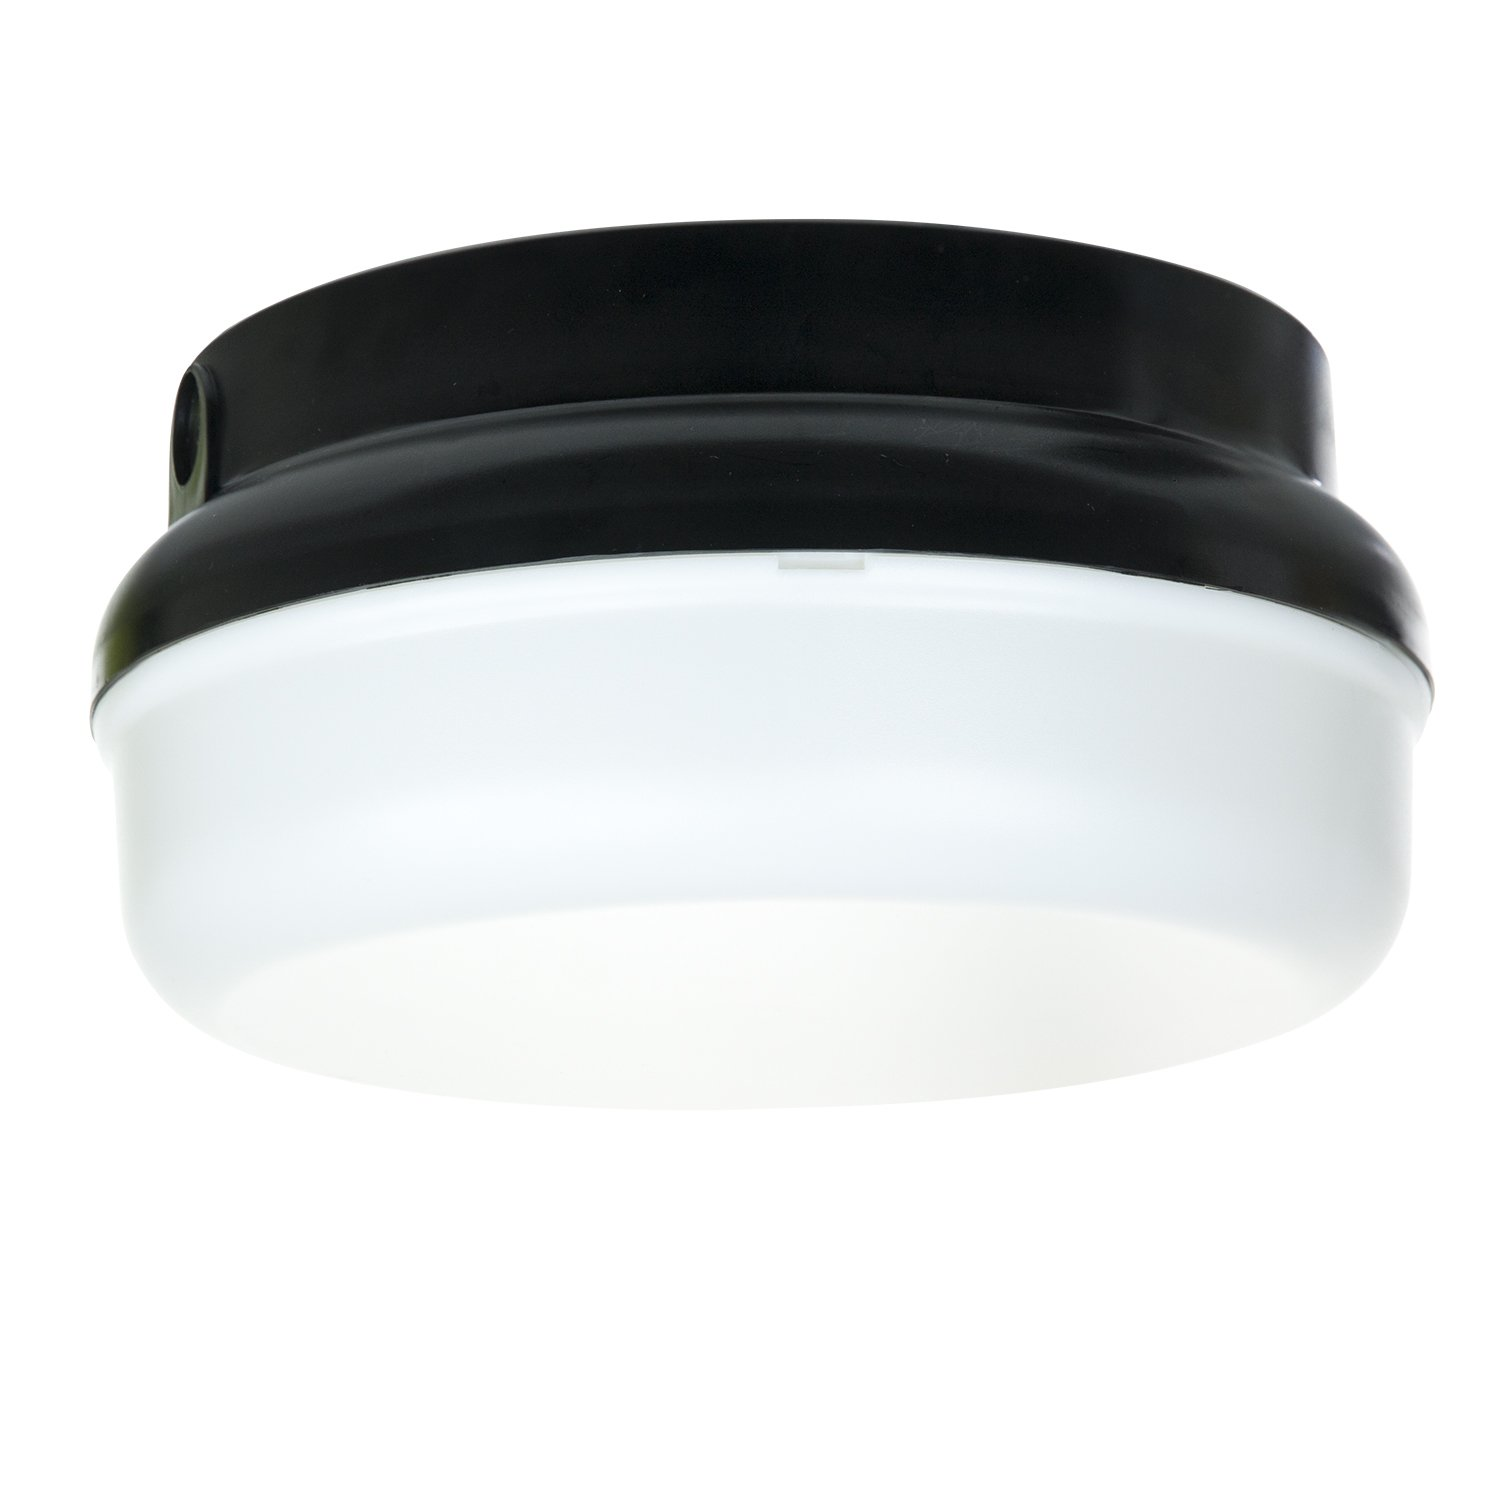 Sunlite 48216-SU DOD/PTR/BK/WH/GU24 Decorative Outdoor Energy Saving Protek Round Polycarbonate Fixture, Black Finish, White Lens